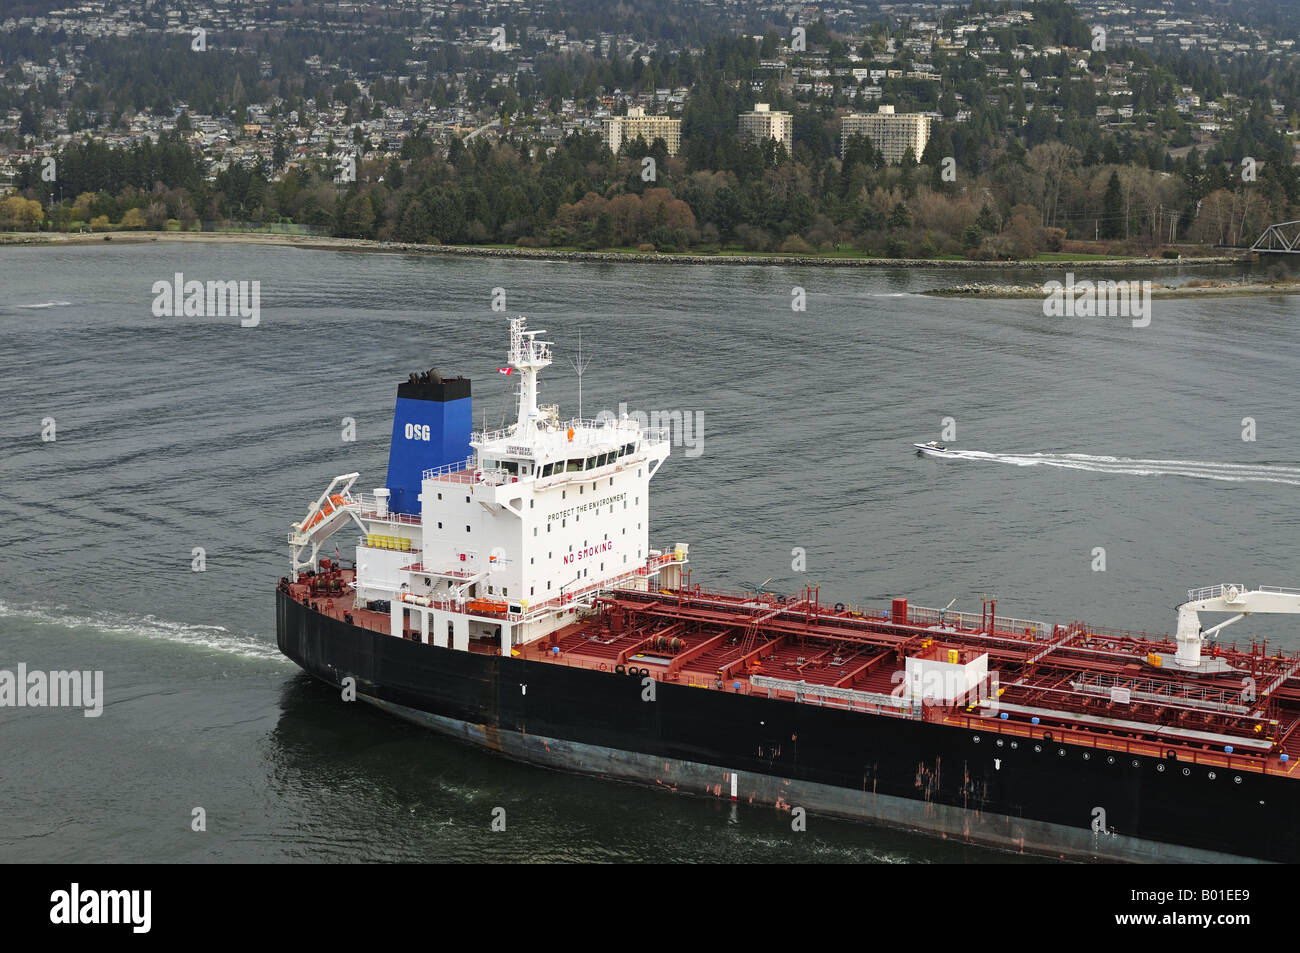 'Overseas Long Beach' Petroleum Chemical Tanker entering the Burrard Bay Inlet North Vancouver City B.C. - Stock Image